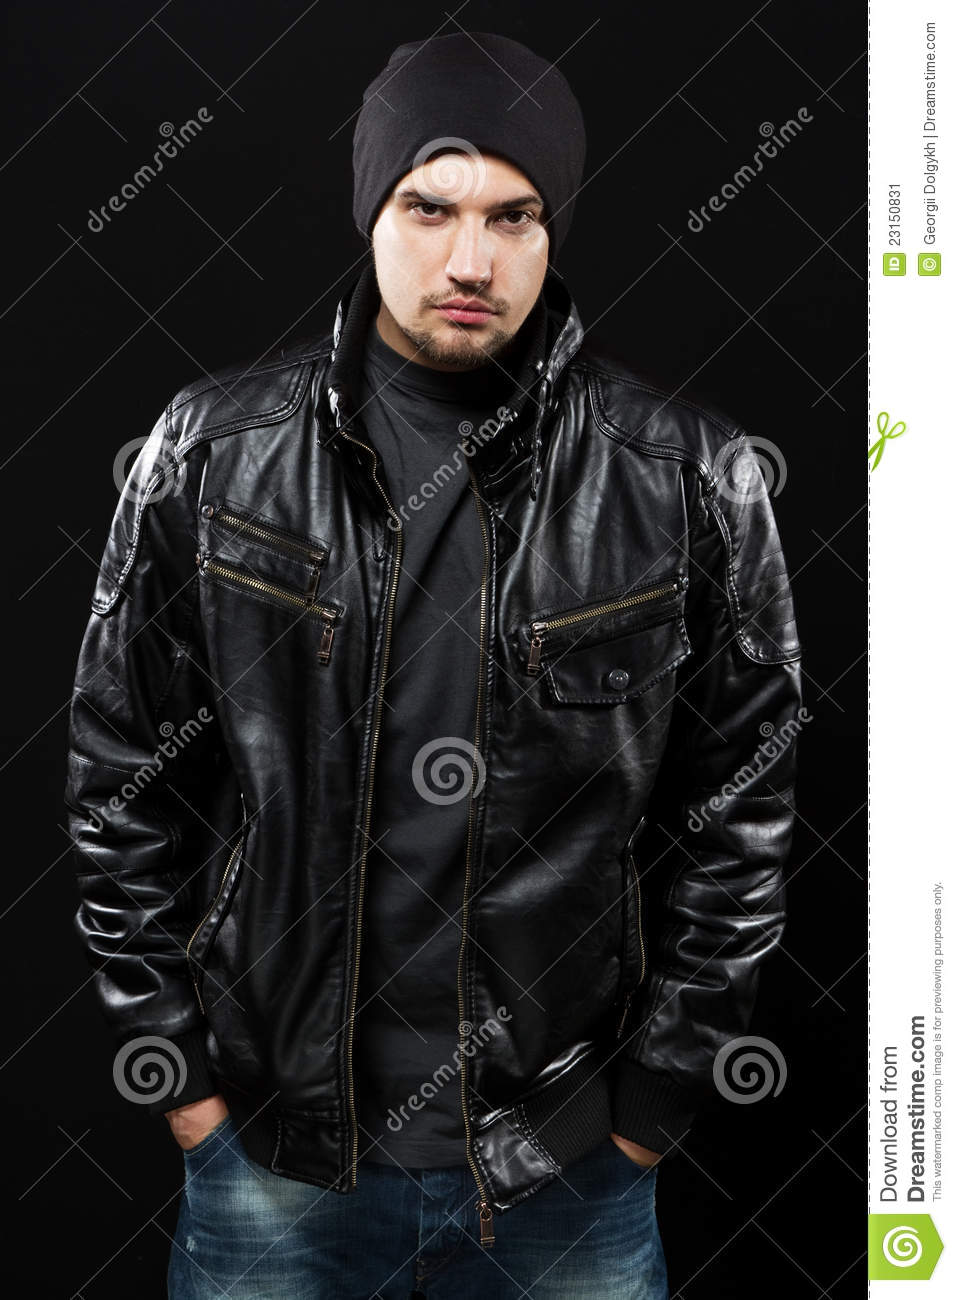 Handsome Young Man In Black Leather Jacket Stock Image - Image ...